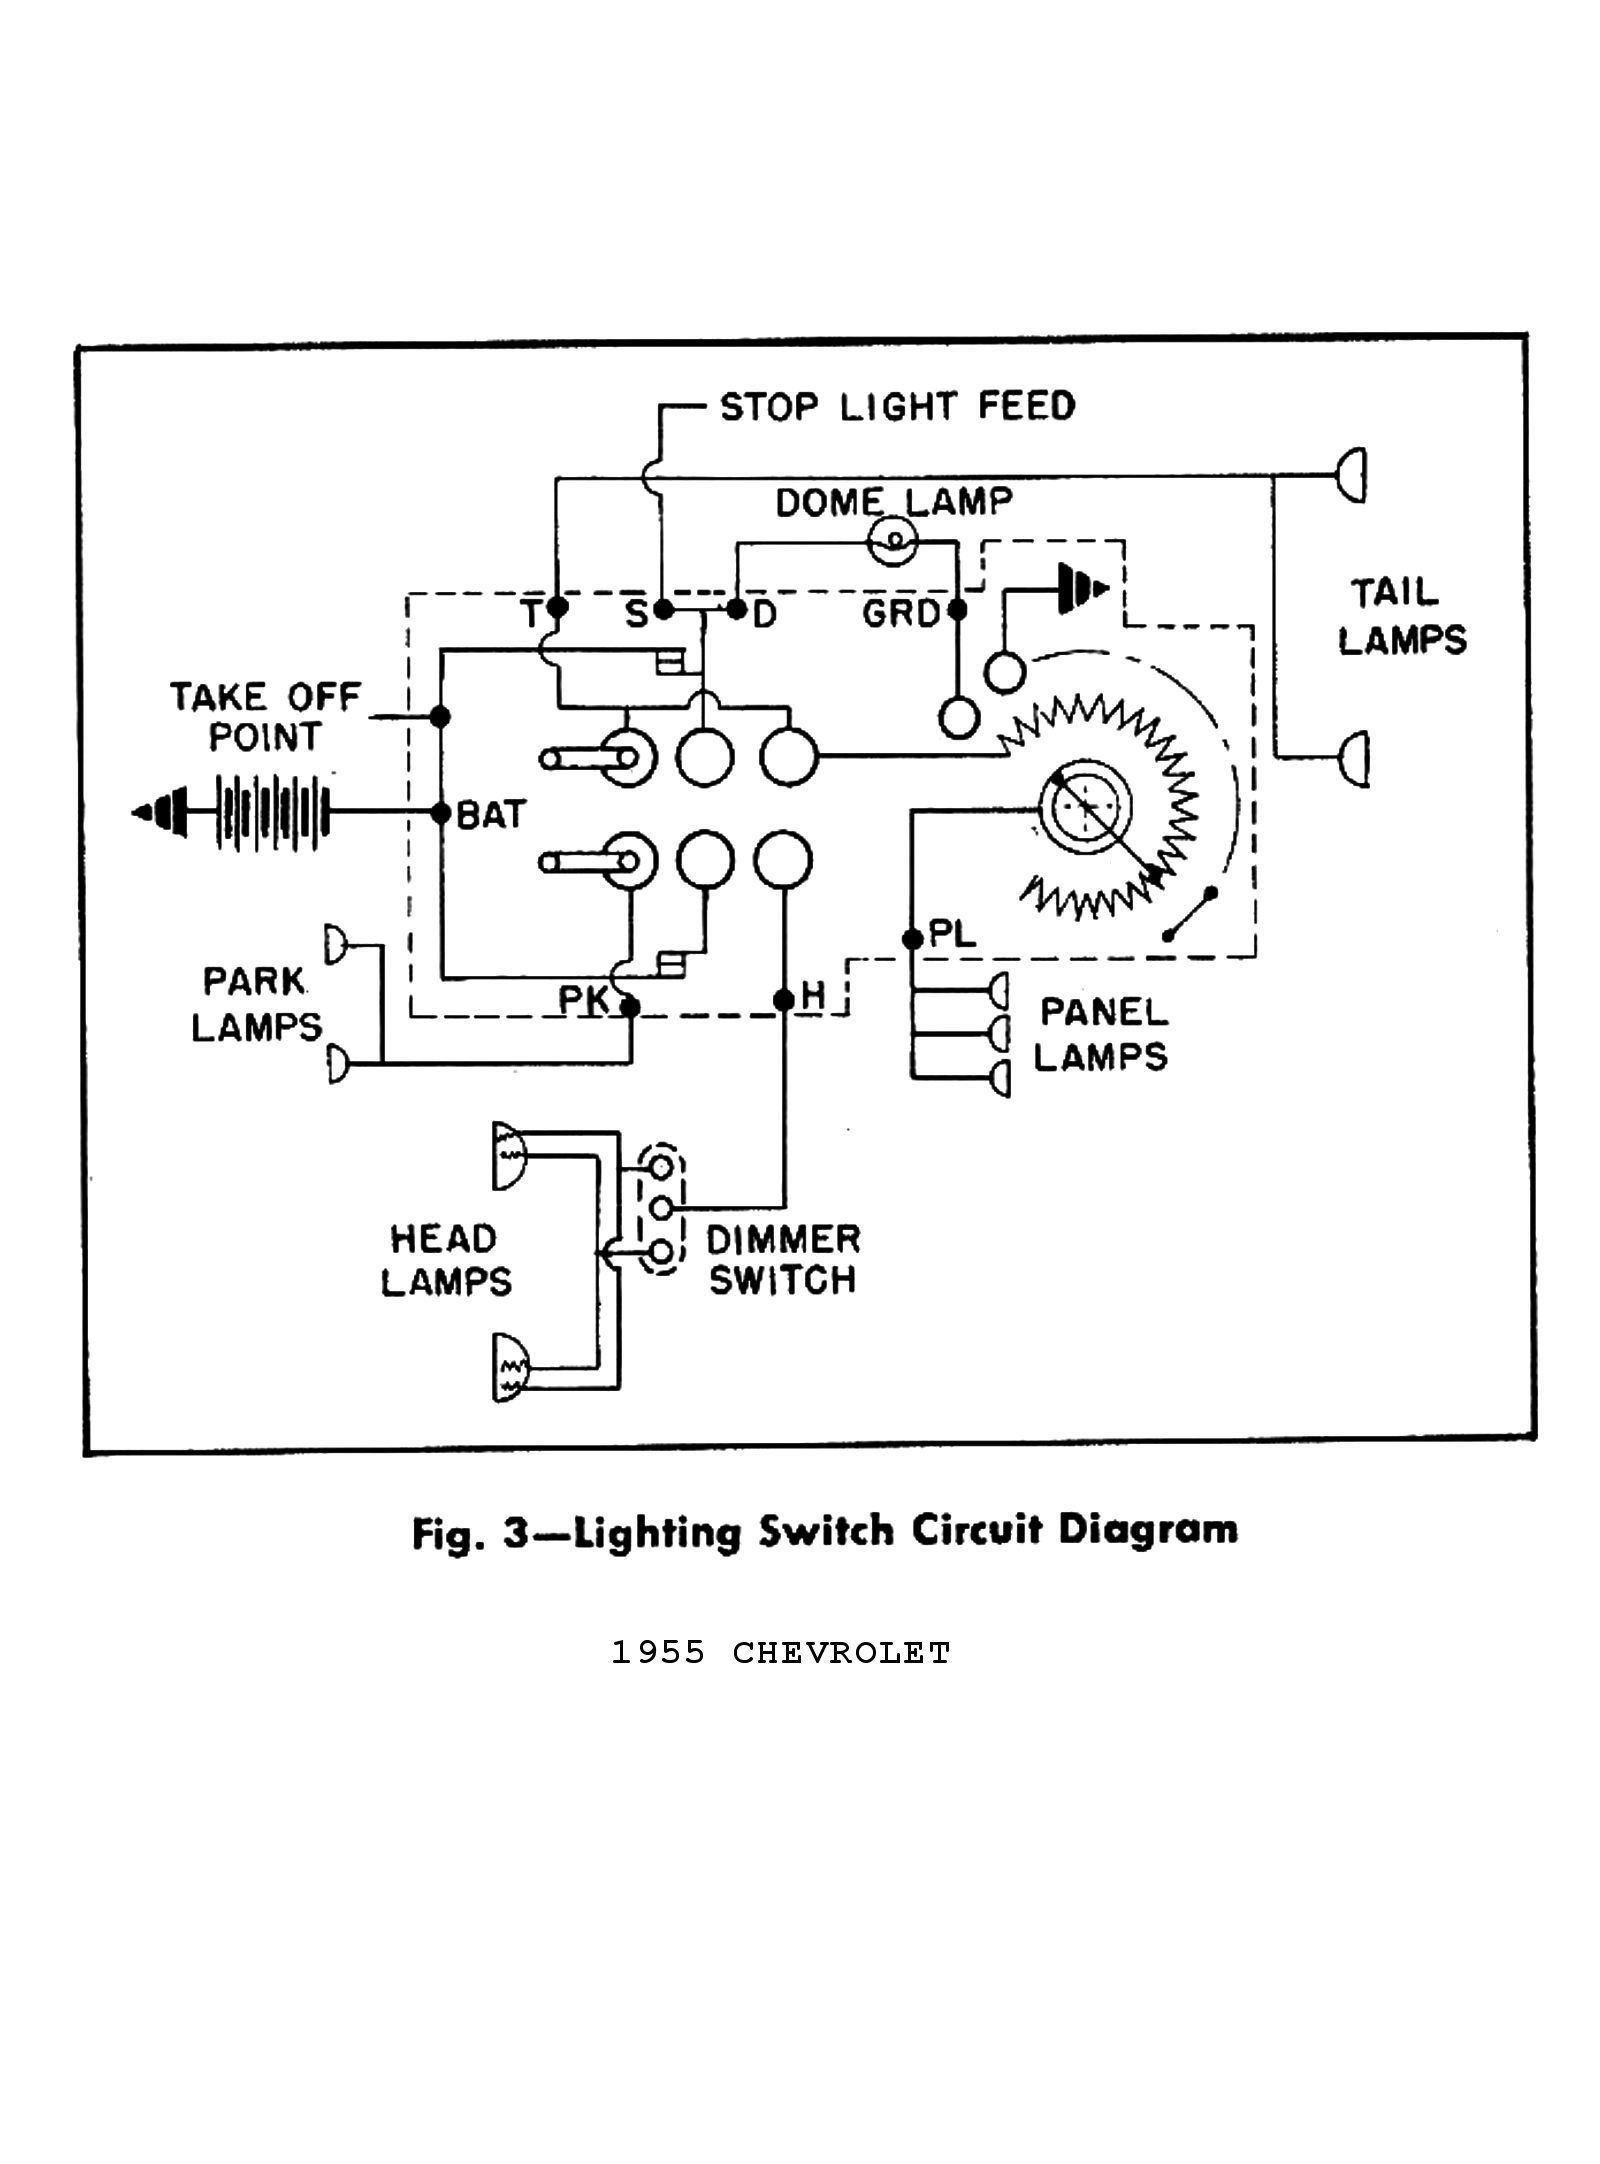 universal ignition switch wiring diagram inspirational 1955 chevy of rh pinterest com 55 Chevy Ignition Wiring Diagram Starter 57 Chevy Ignition Switch Wiring Diagram